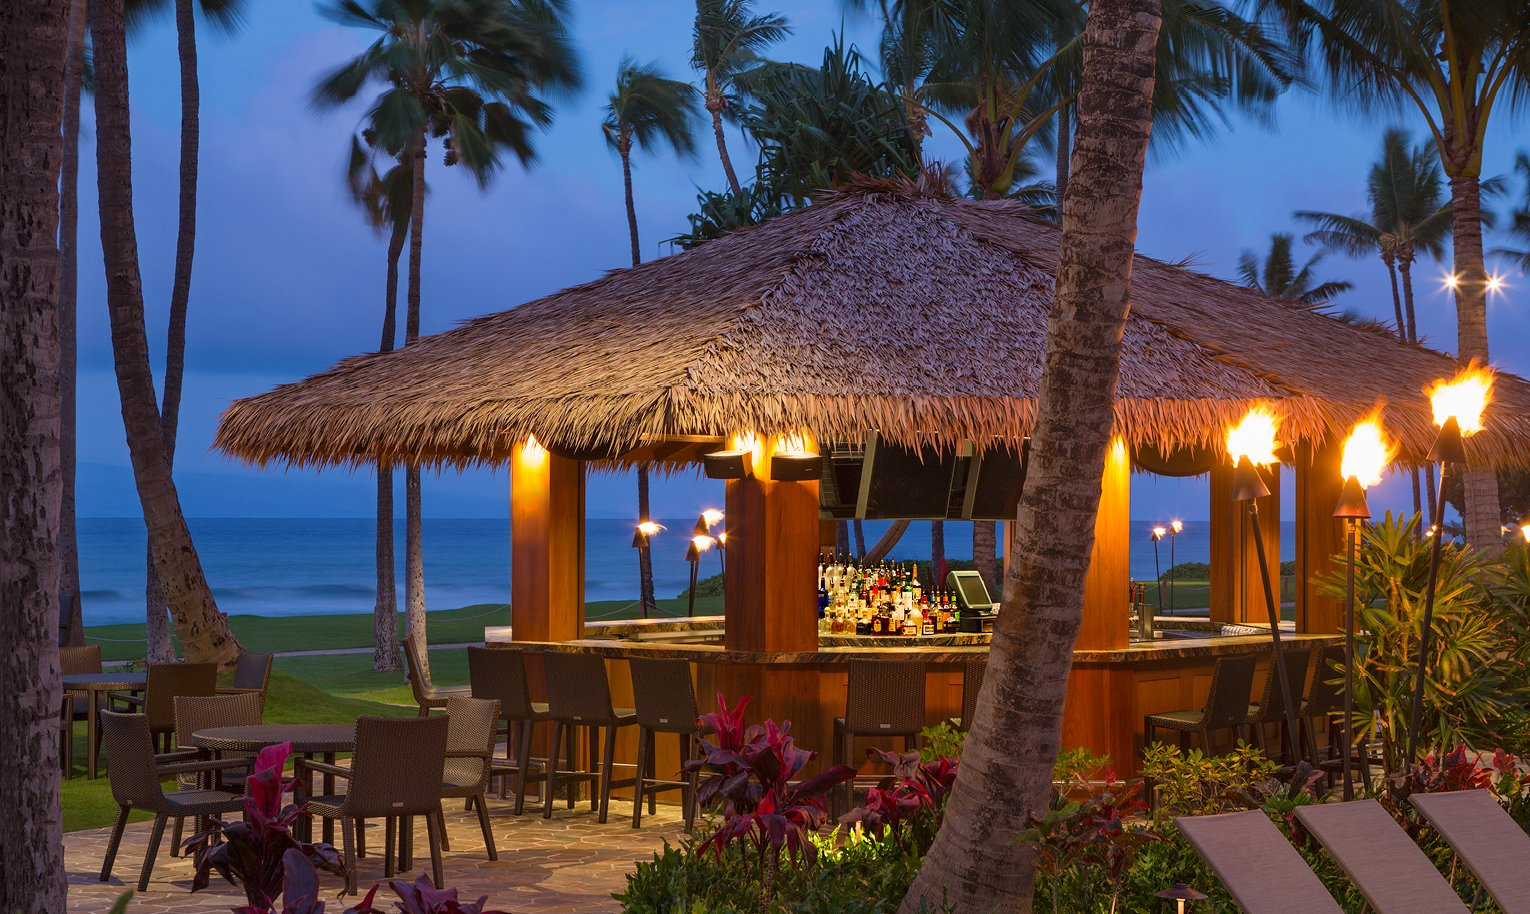 Hyatt Kaanapali Beach Club Accommodations, Dining and Amenities